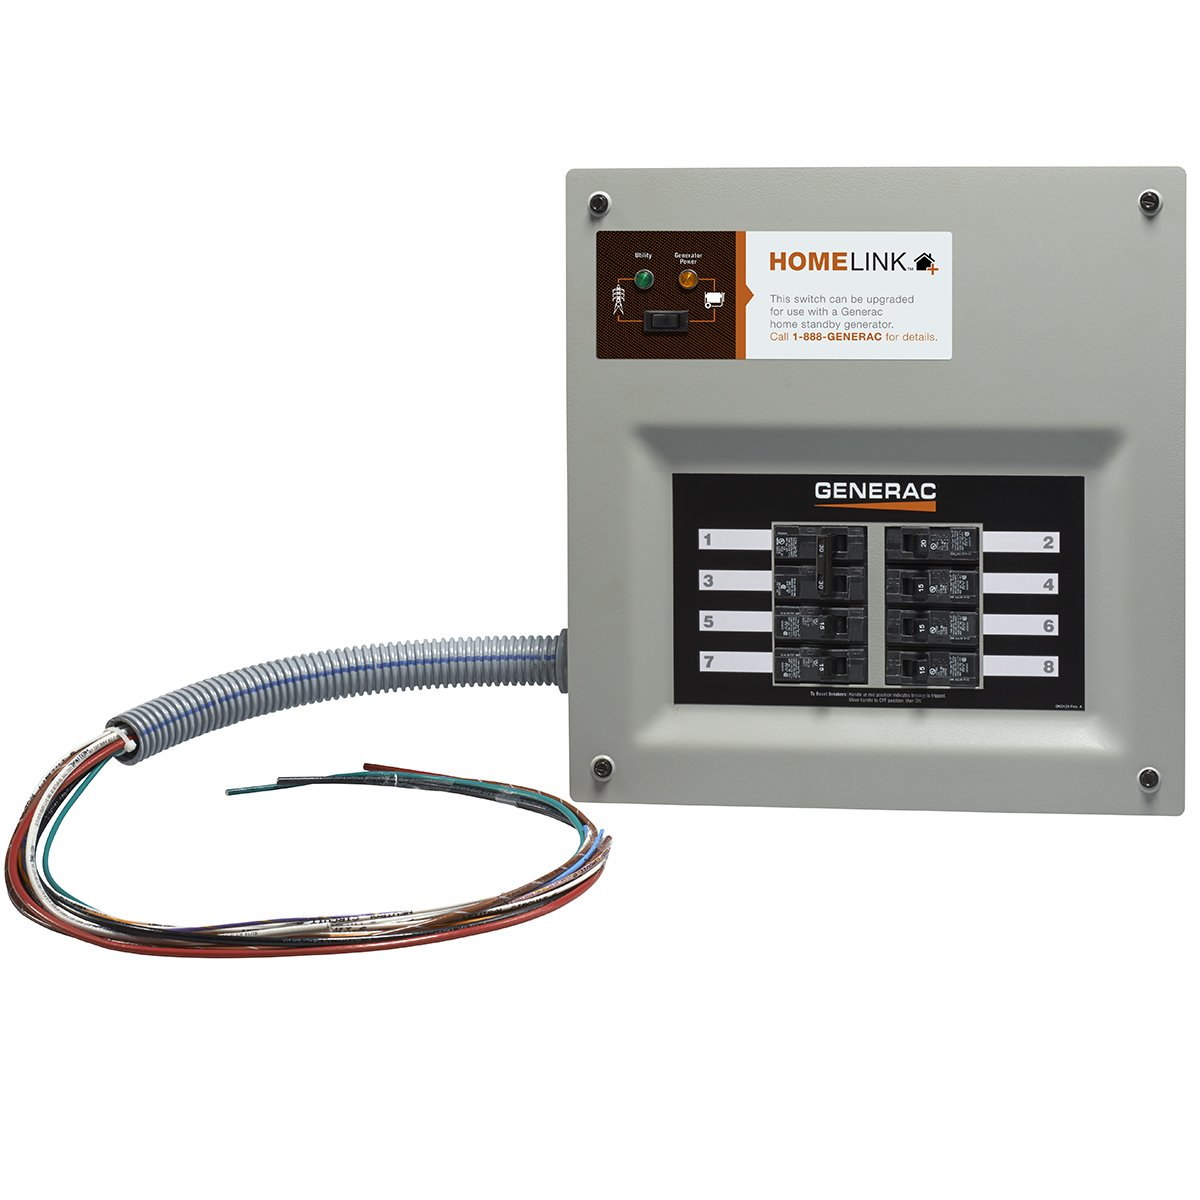 Generac 6852 Home Link Upgradeable Transfer Switch Kit, 30 Amp by Generac